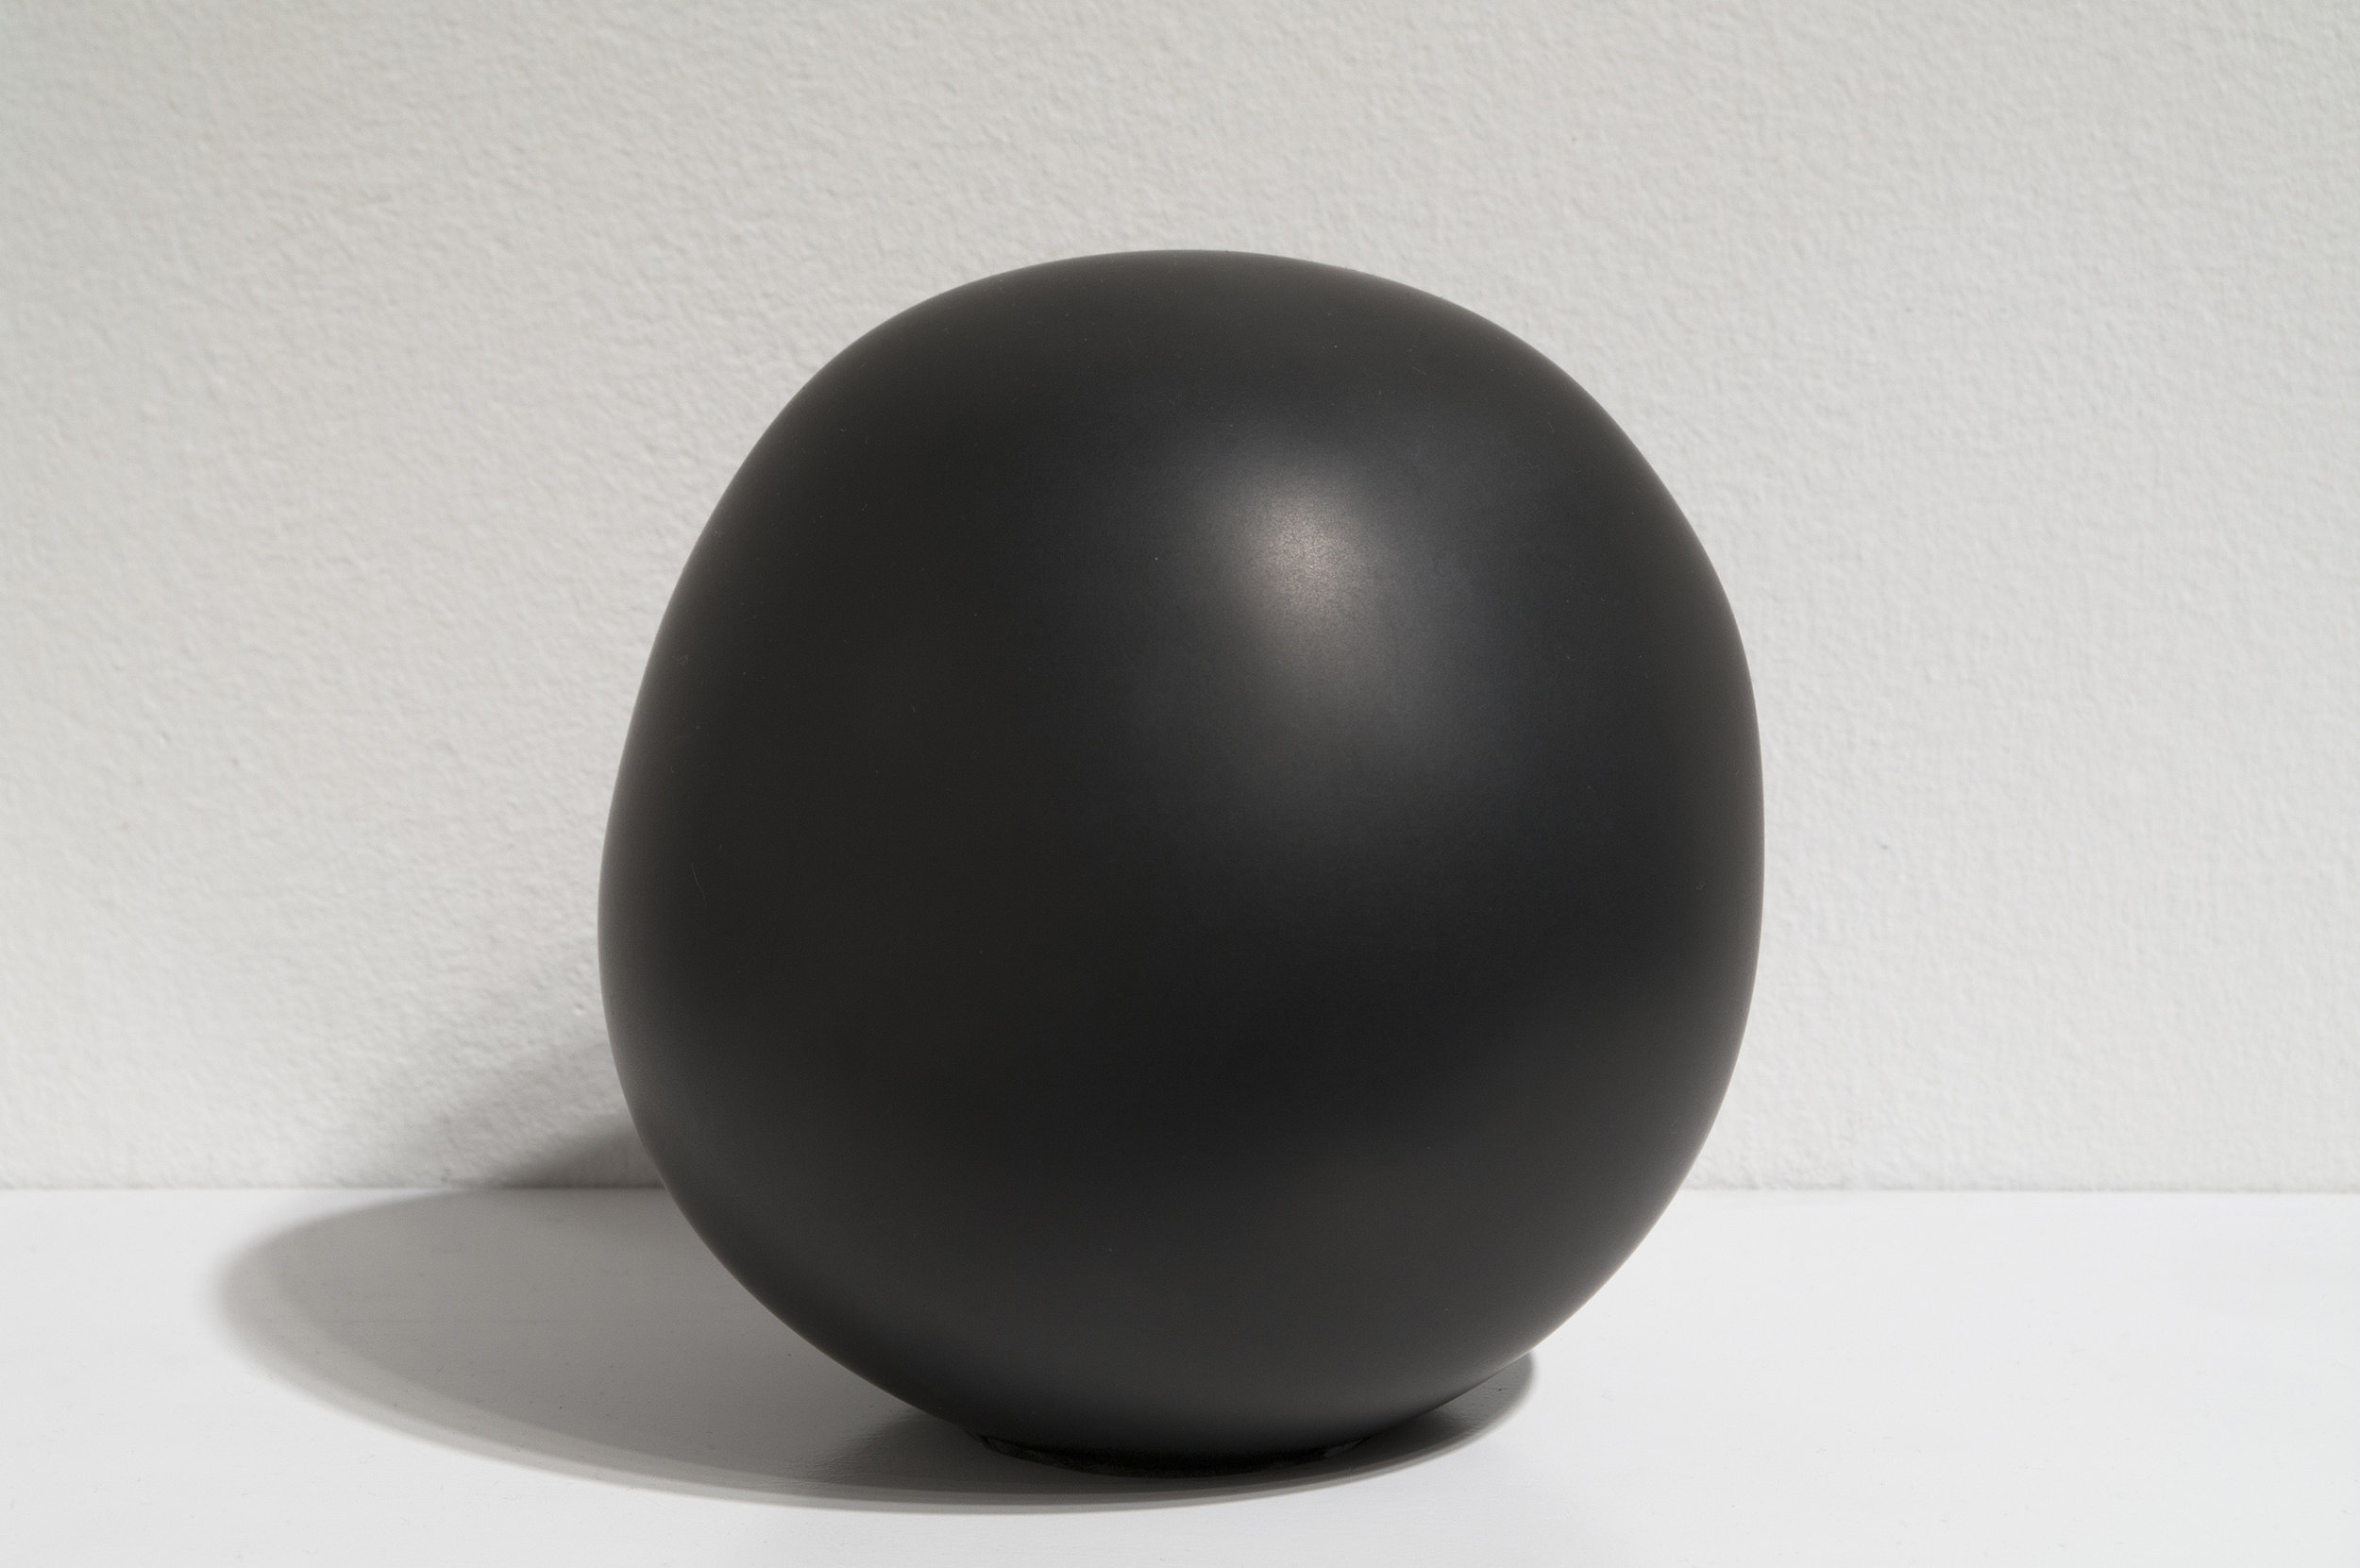 """Daily Practice, Sphere, no. 26, 2010  5"""" x 4"""" x 4.25"""", Solid graphite"""